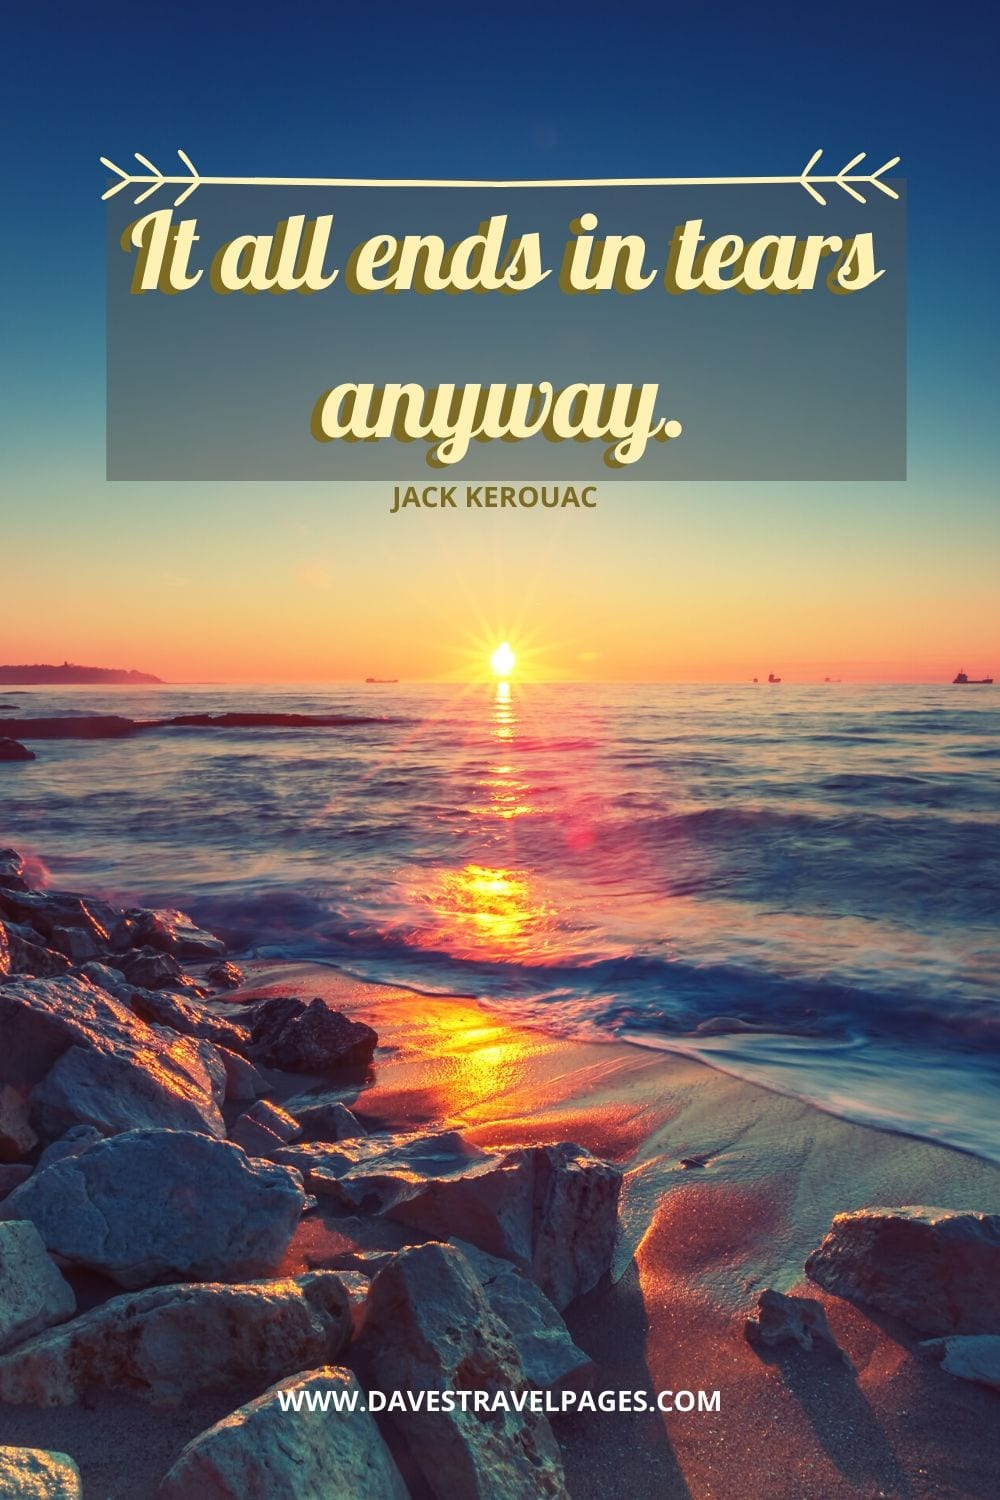 """It all ends in tears anyway."" - Jack Kerouac, The Dharma Bums"